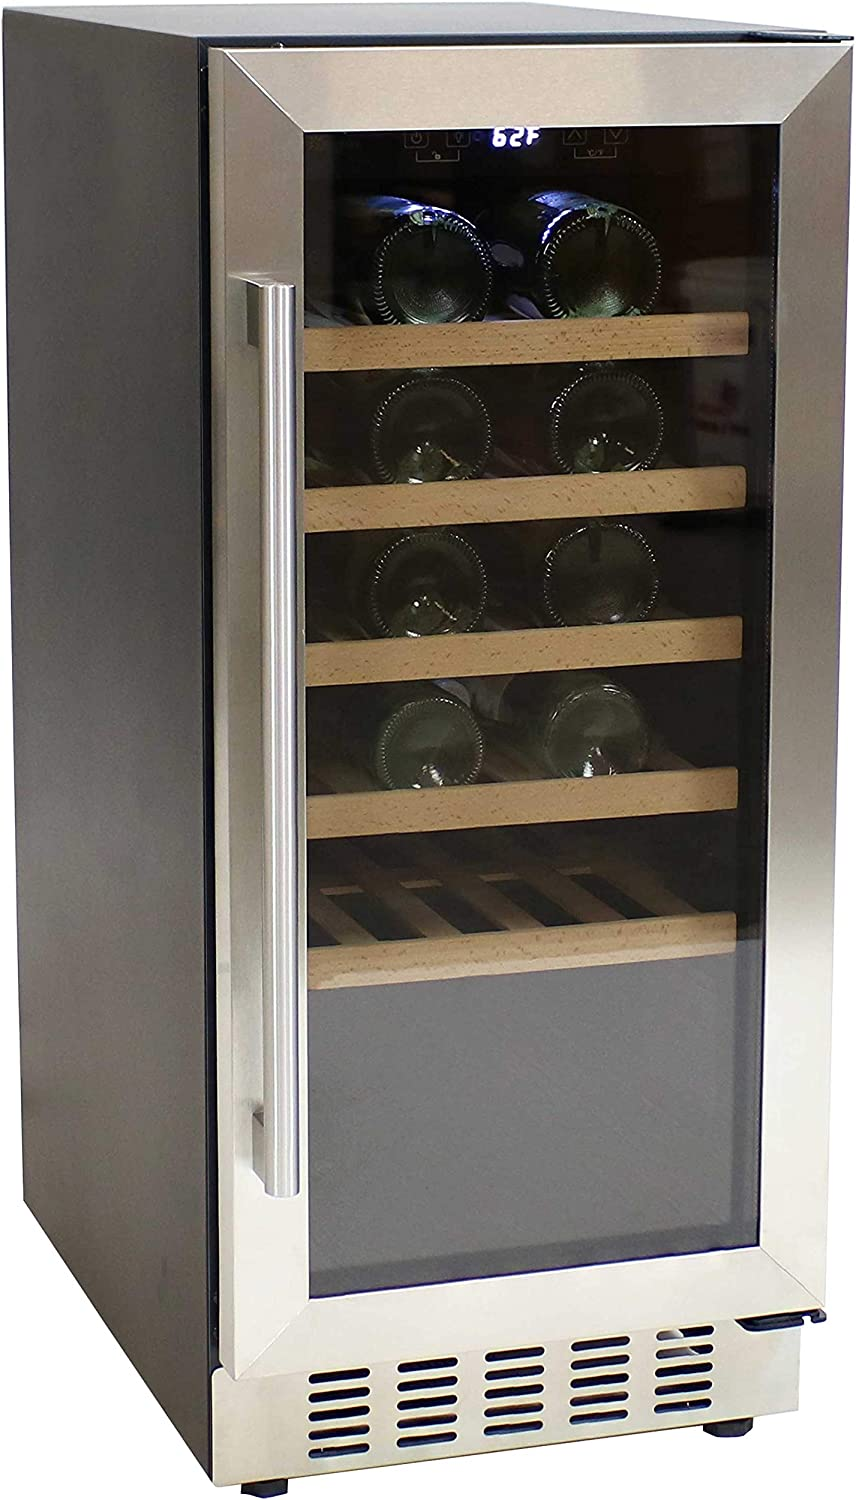 Sunnydaze Stainless Steel Beverage and Wine Cooler Single Zone Refrigerator with Sliding Wooden Shelves, Touchpad Temperature Control and LED Light - 33-Bottle Capacity